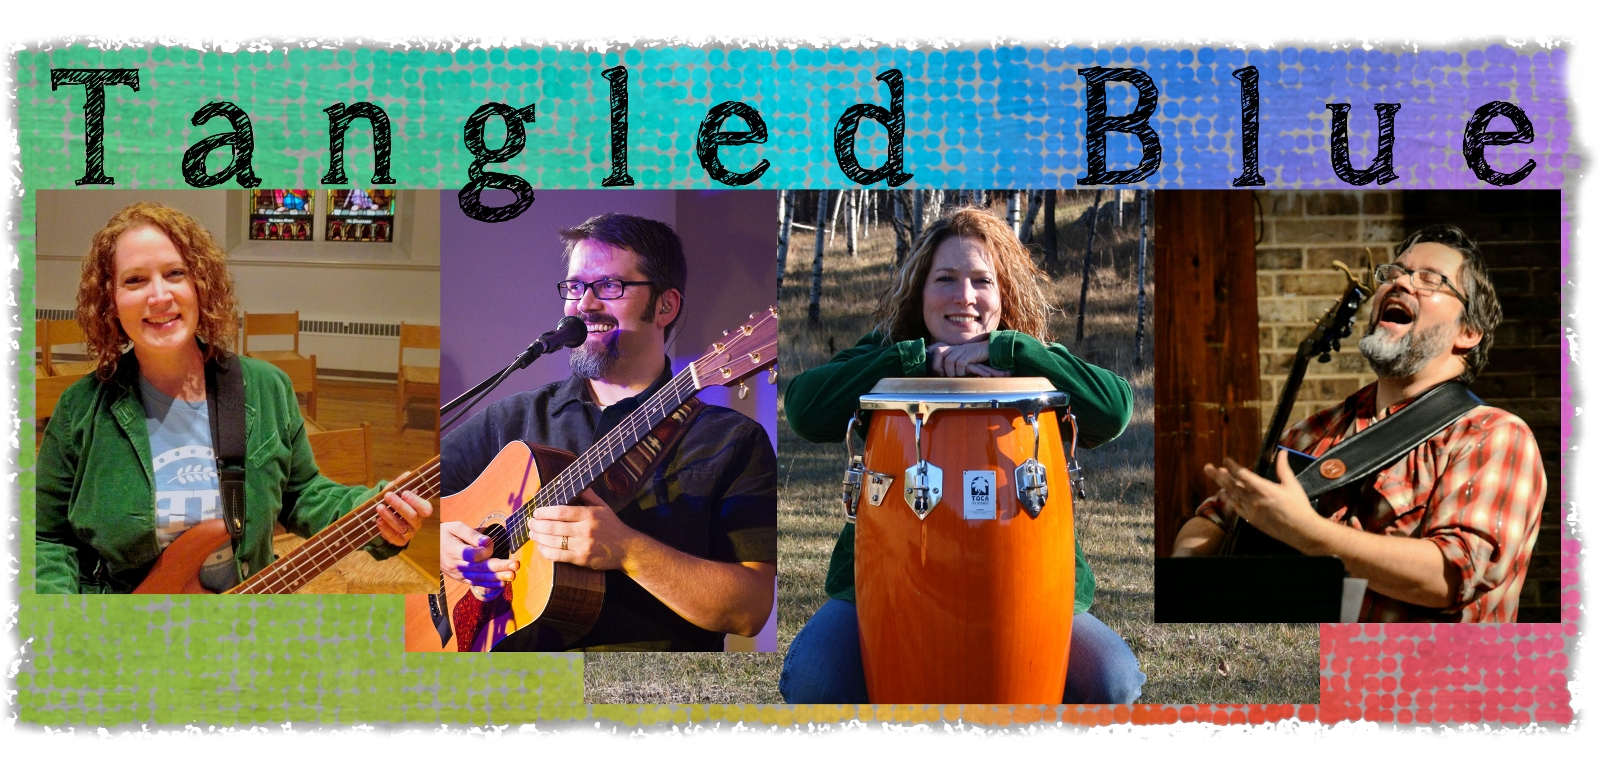 Tangled Blue music group